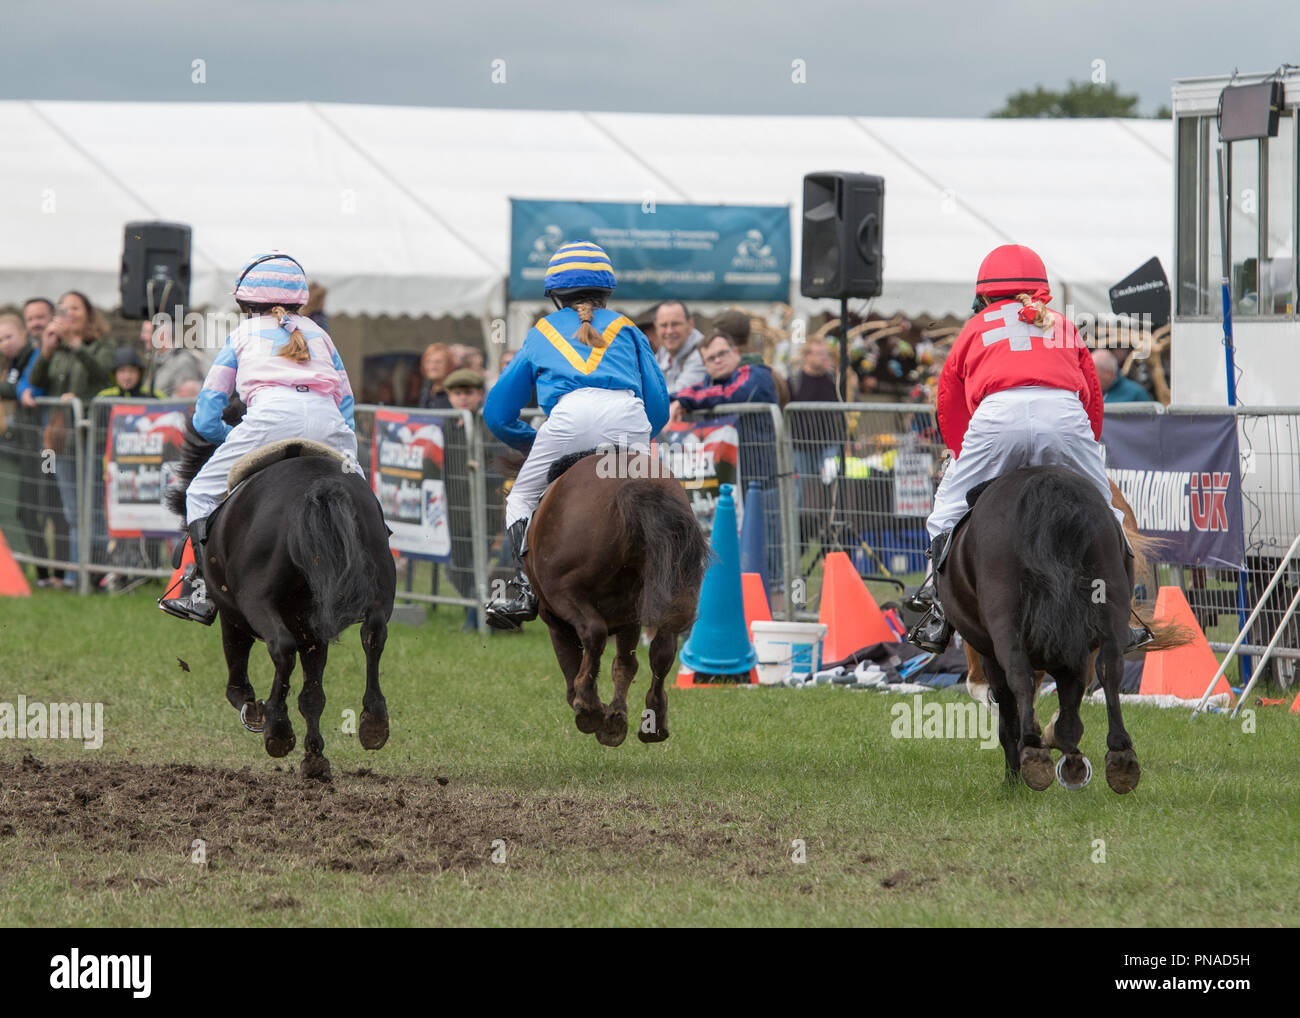 Cheshire Country Fair 2018 - Shetland Pony Racing Stock Photo